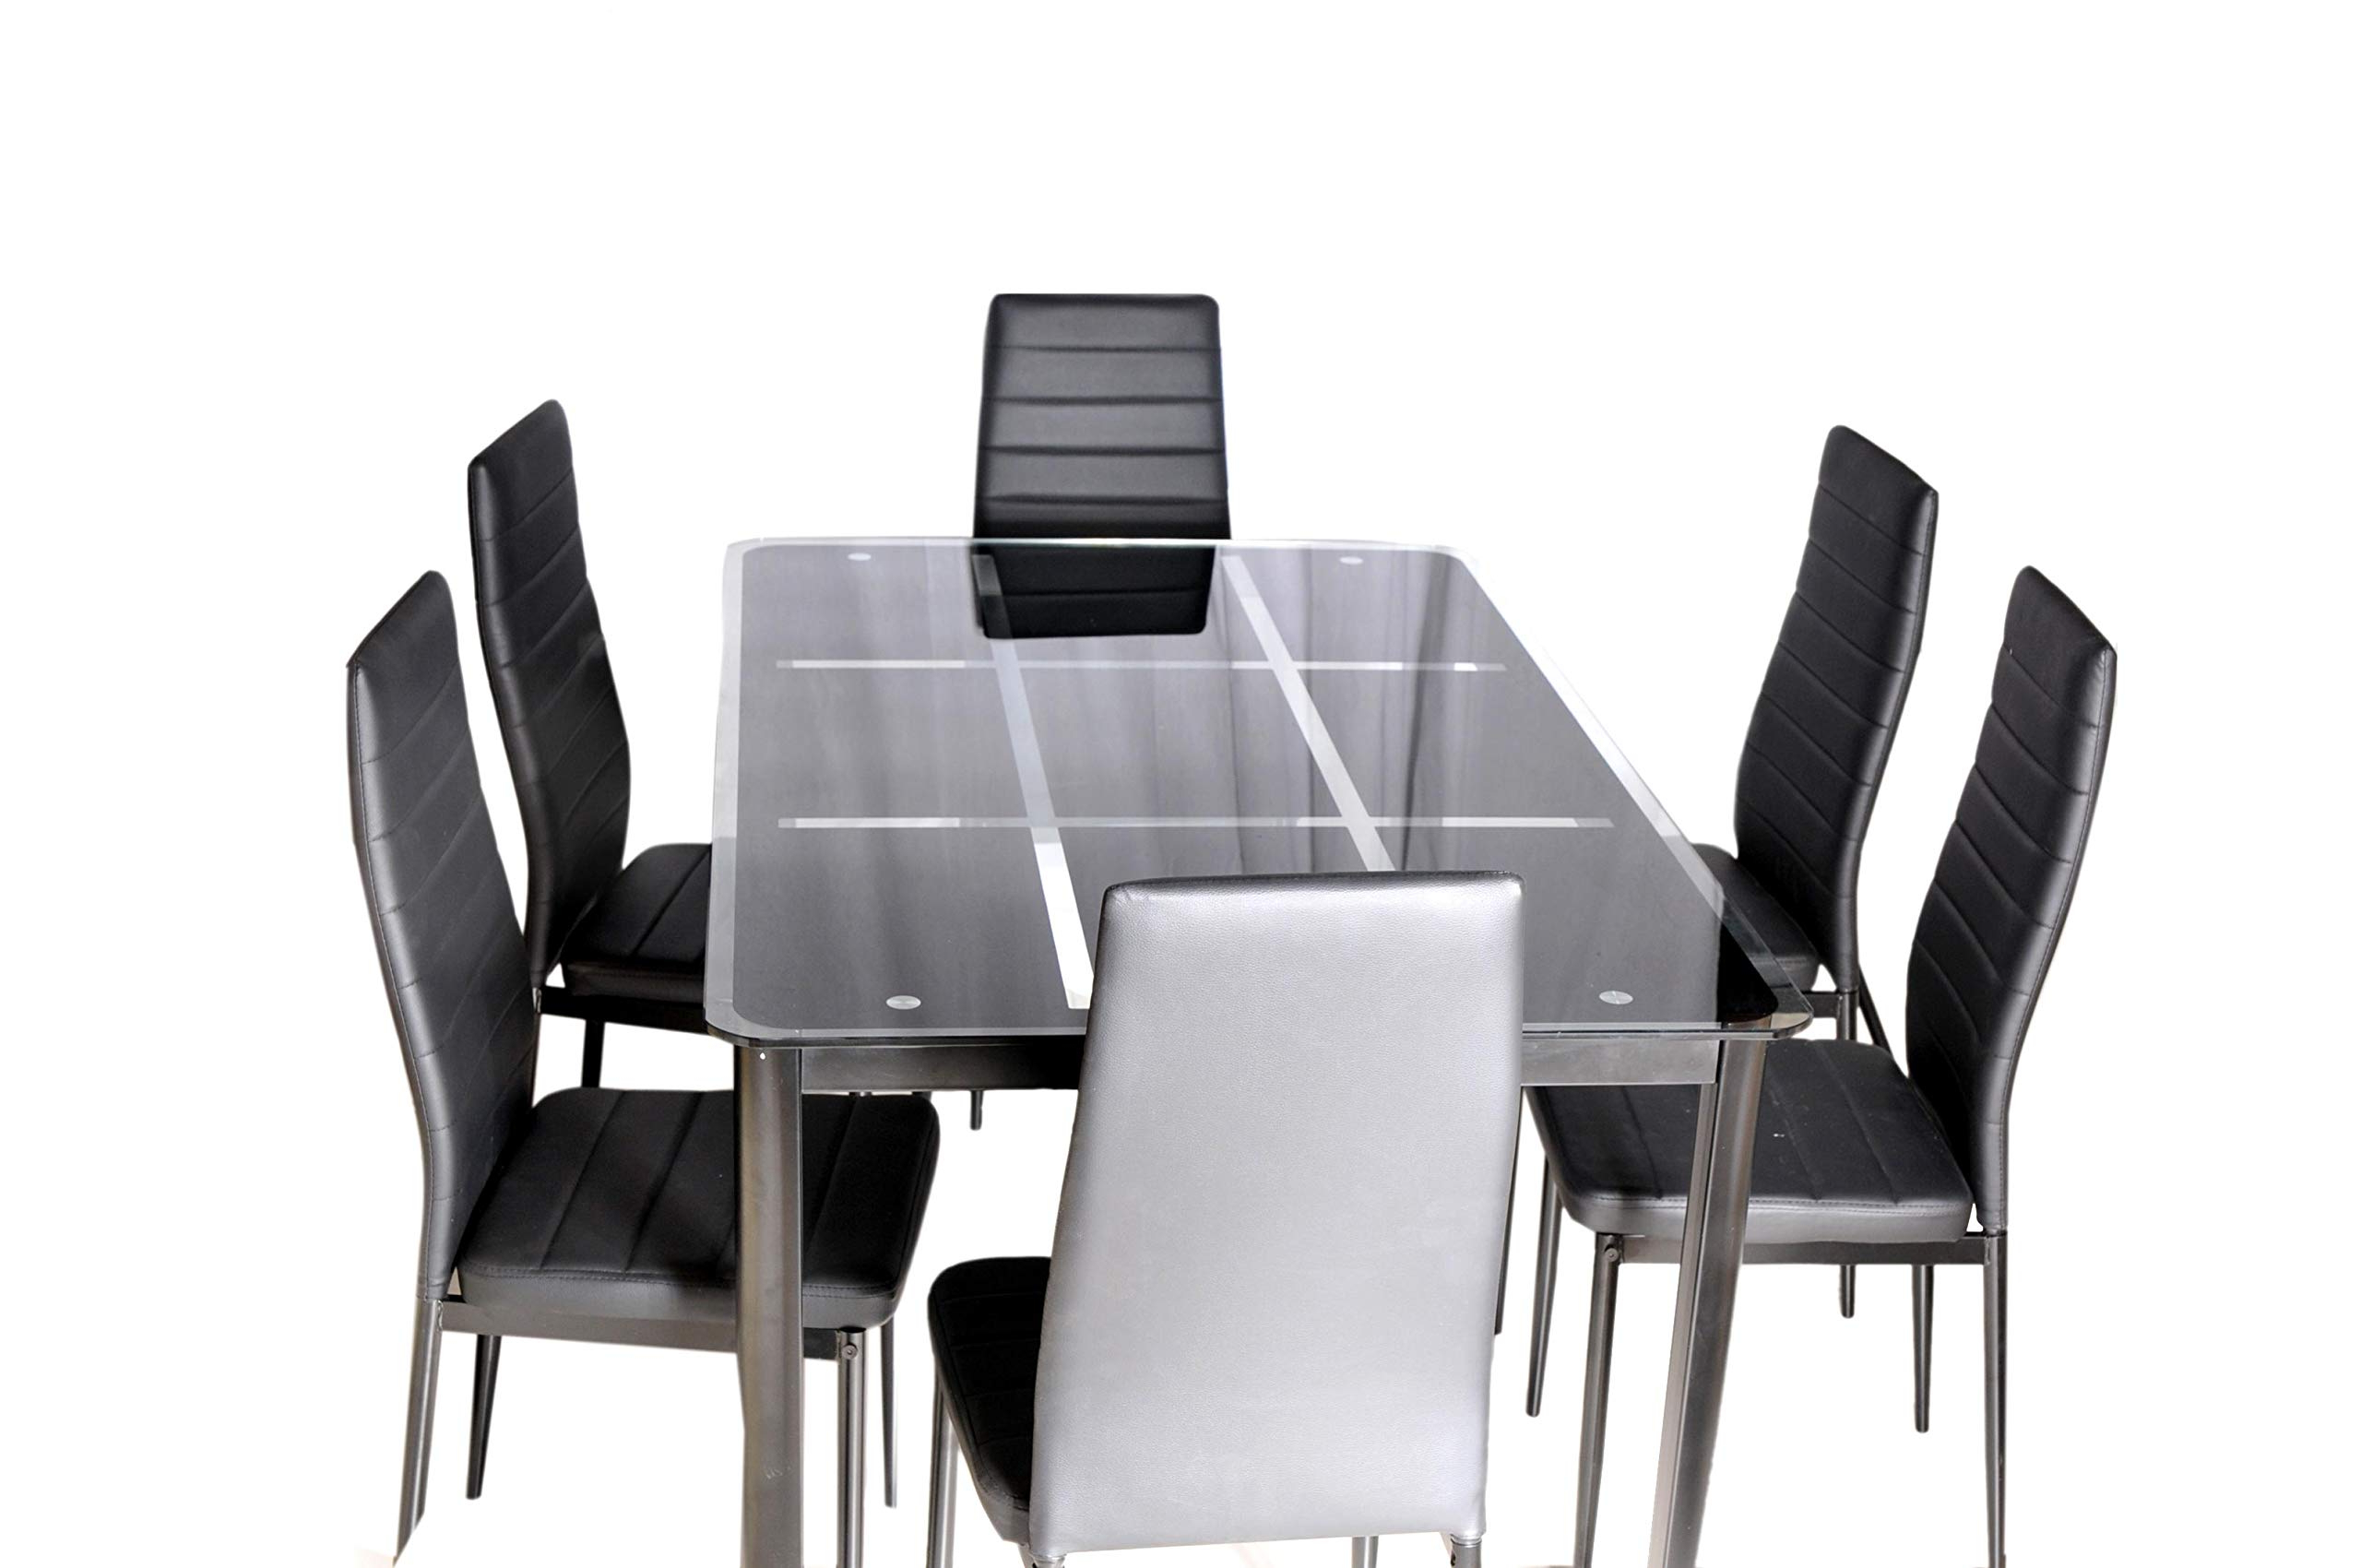 Zena Metal And Glass Dining Table Set, With 6 Chairs, Black Pertaining To Trendy Glass Dining Tables With Metal Legs (Gallery 22 of 30)